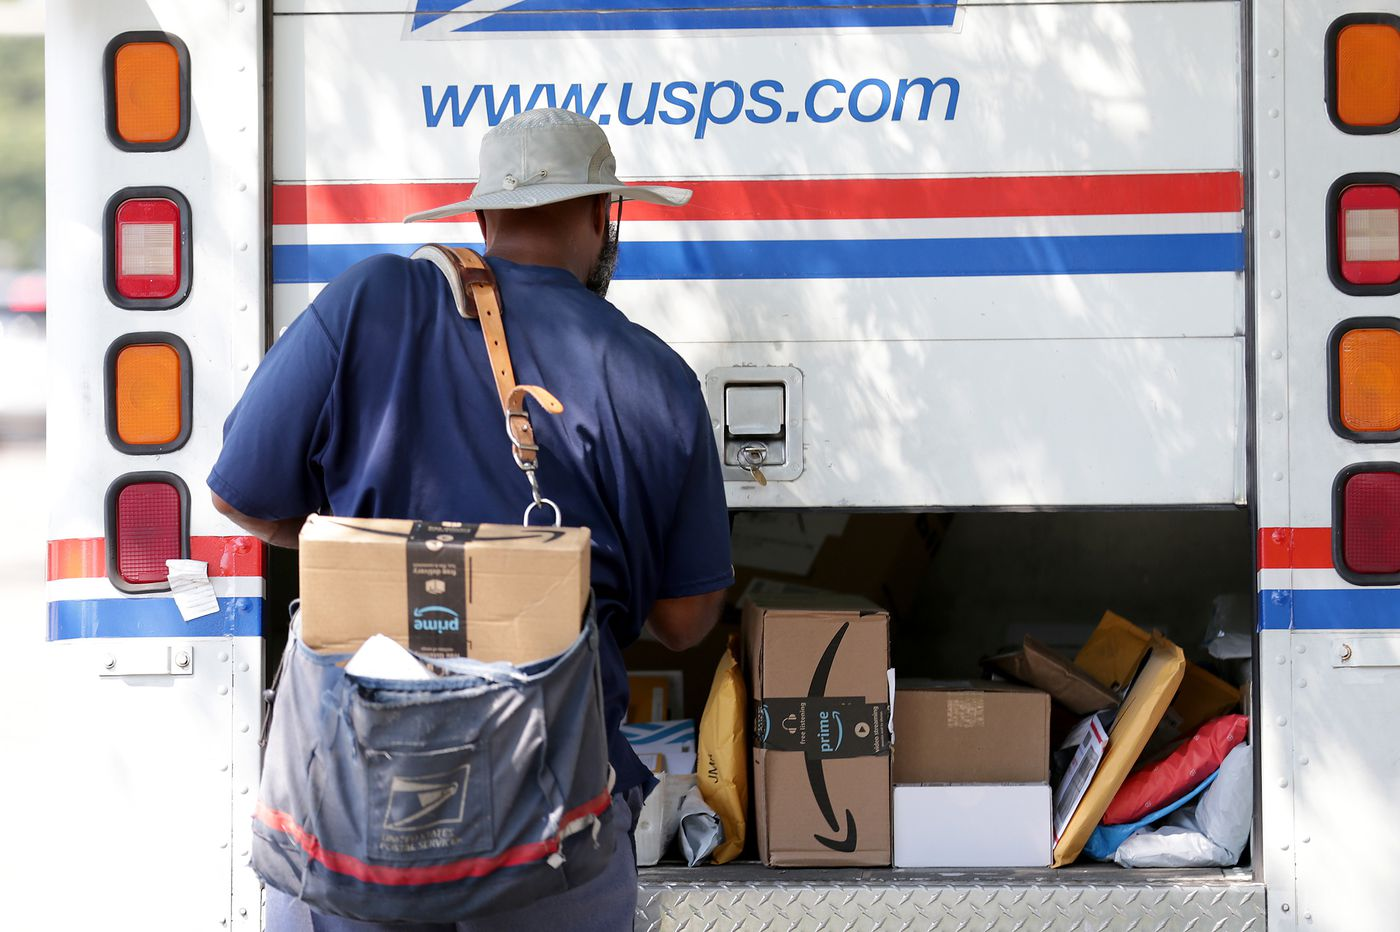 The USPS is putting all resources toward delivering ballots. But the rest of the mail is piling up.